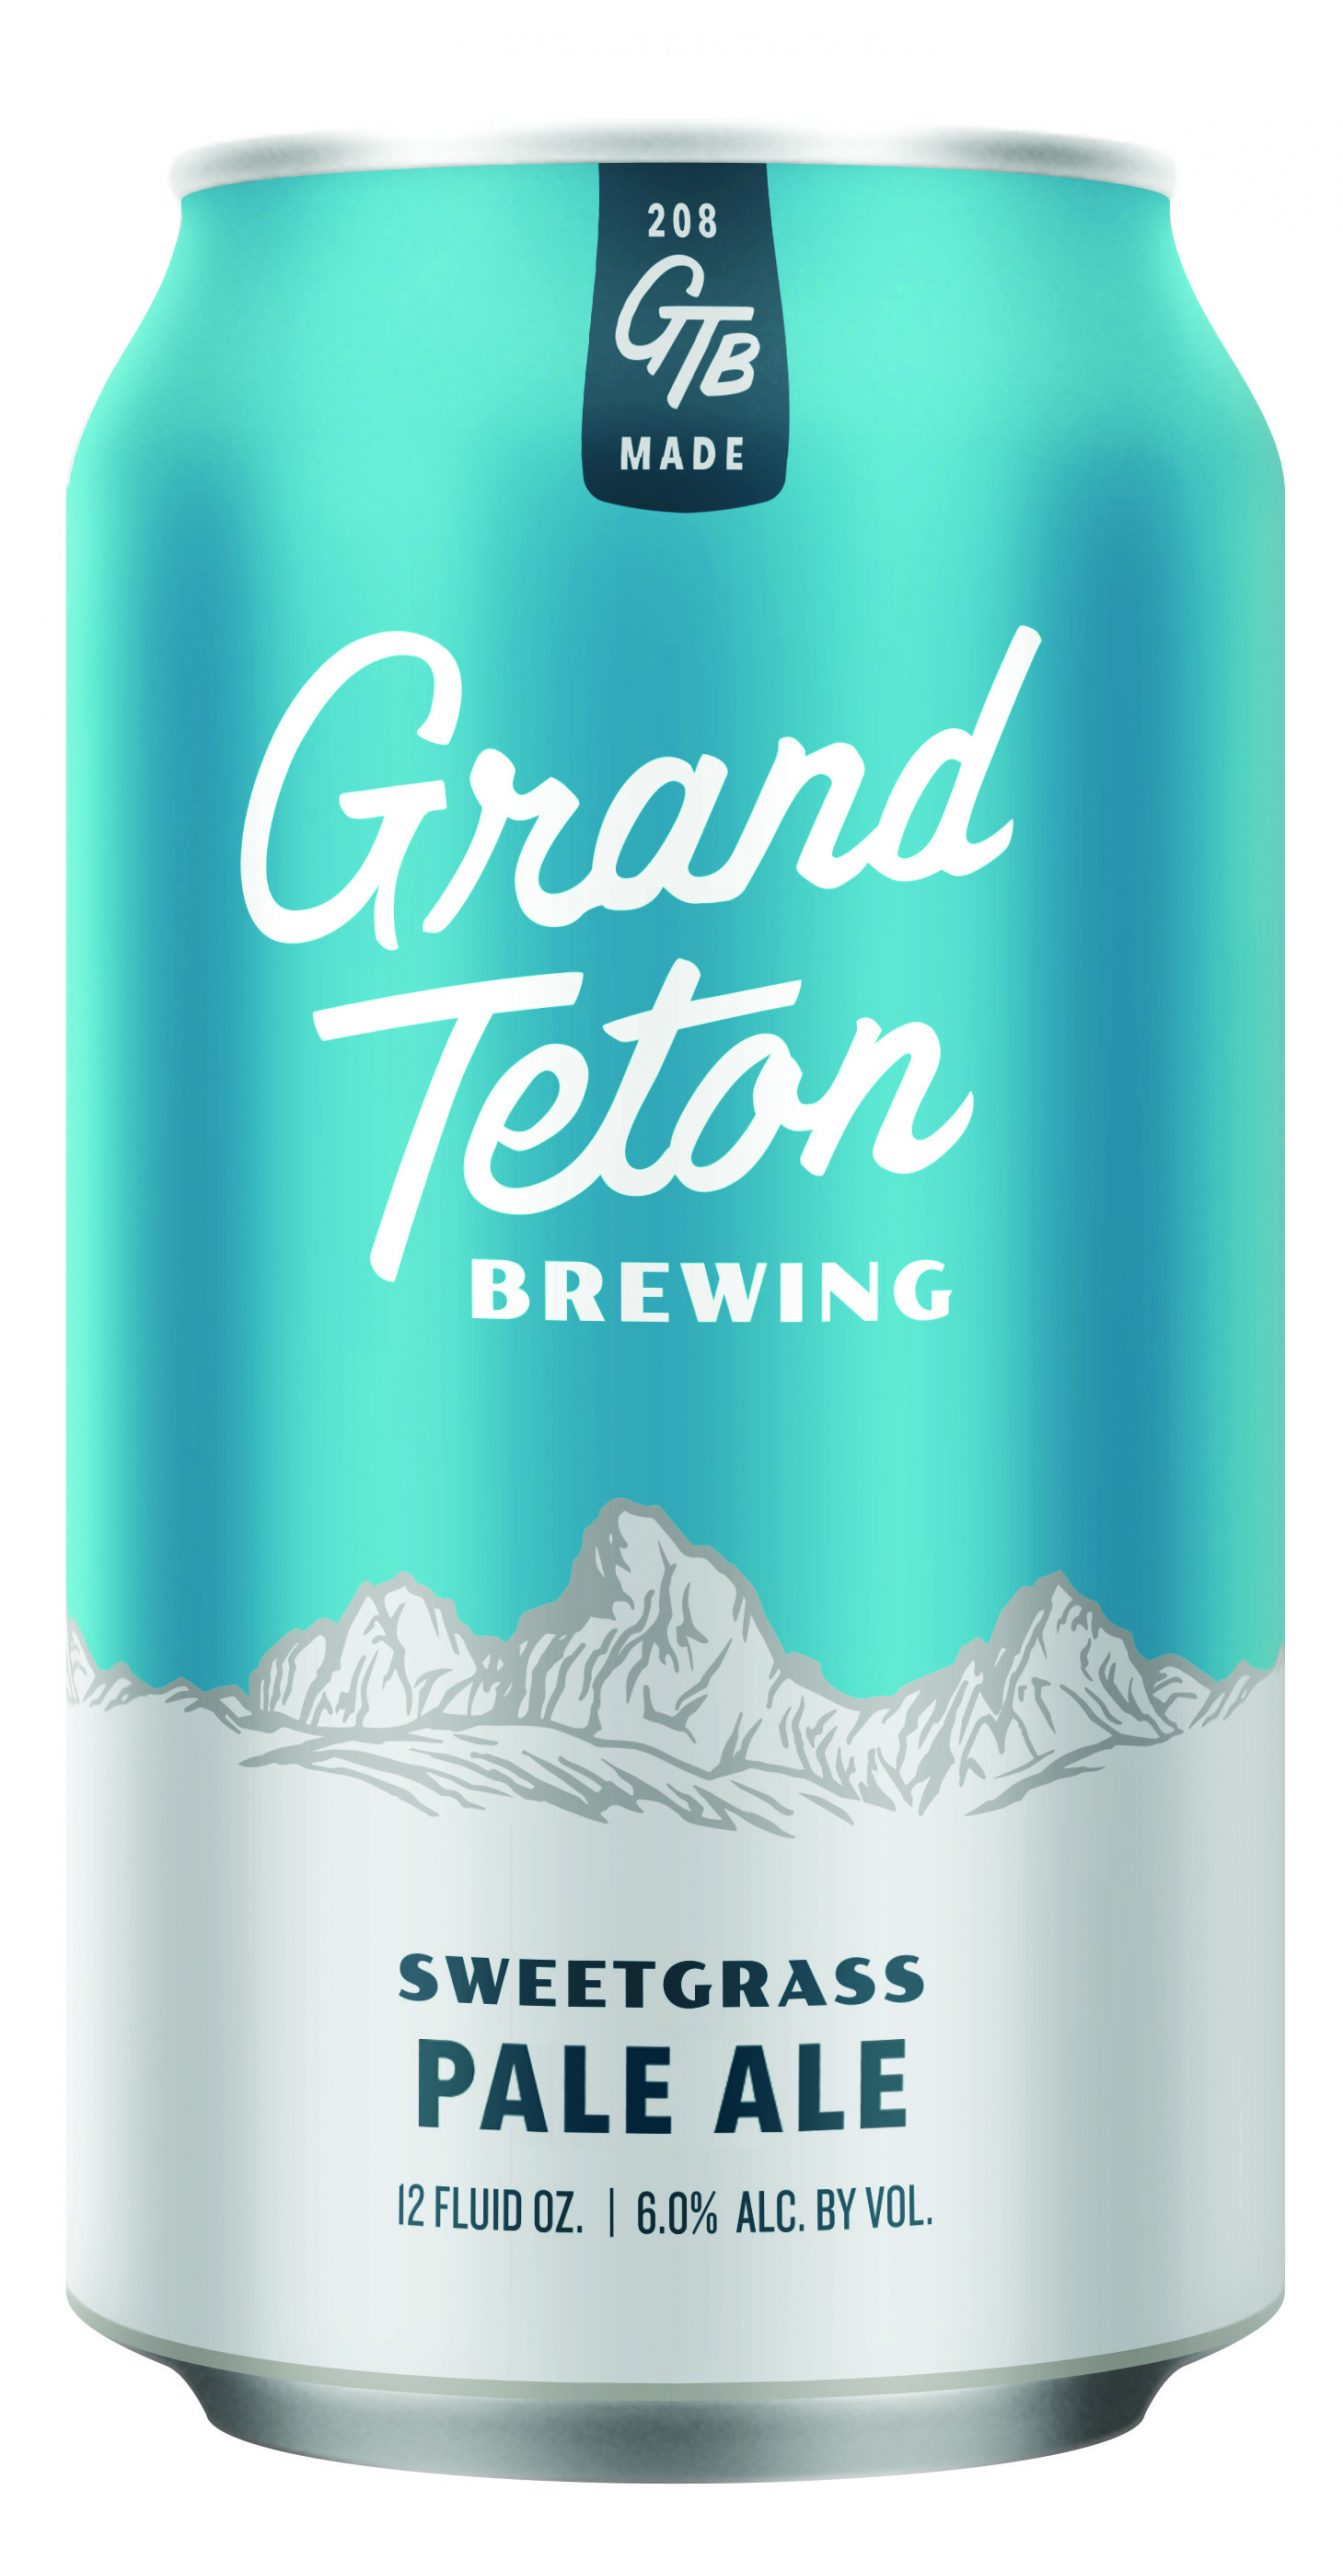 http://grandtetonbrewing.com/wp-content/uploads/Swetgrass-Pale-Ale-can-scaled.jpg